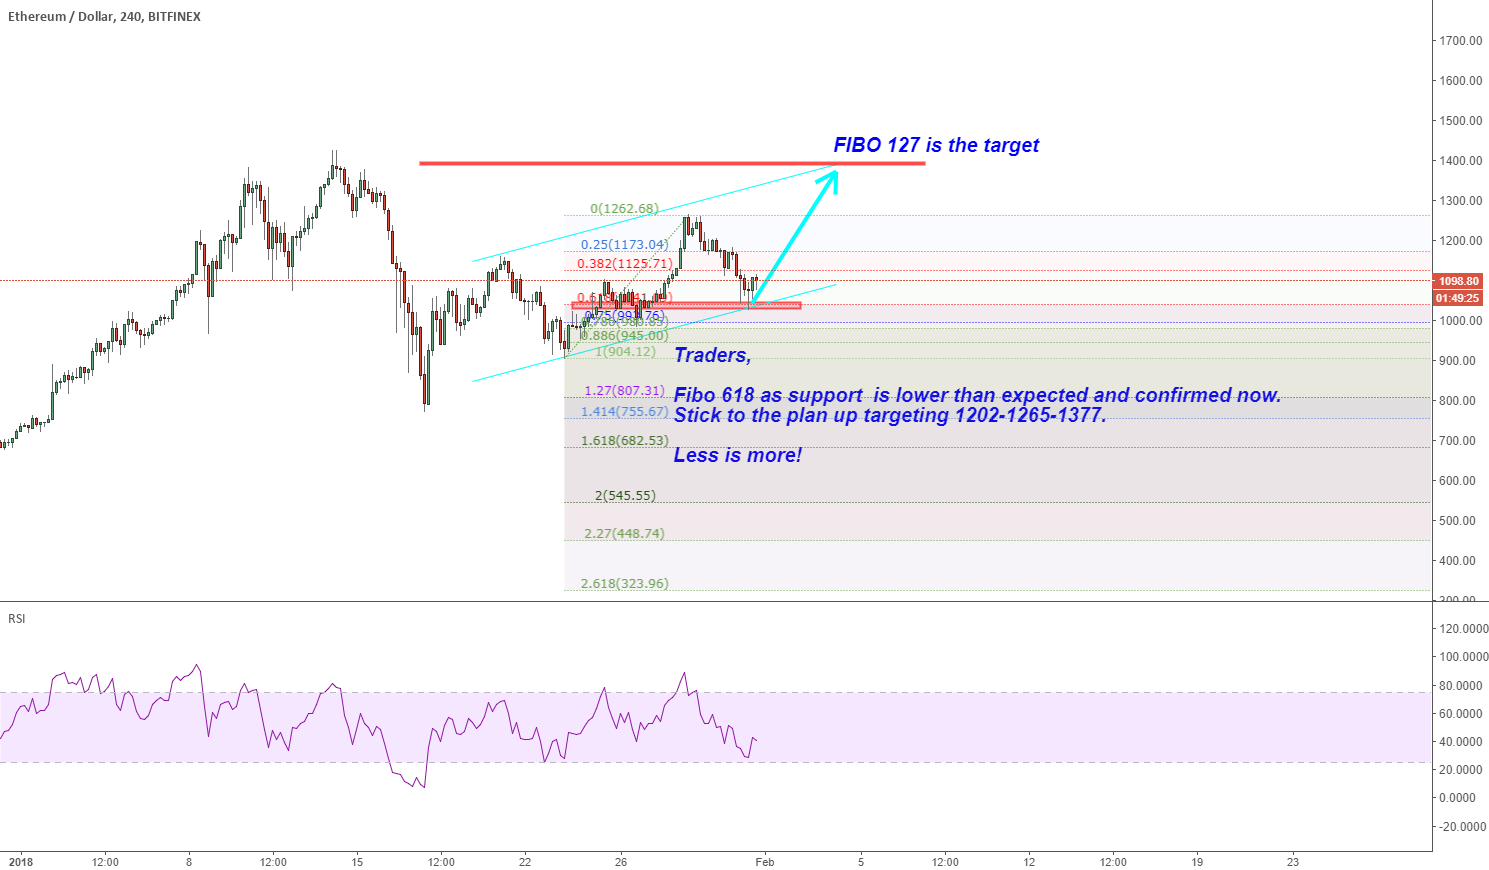 ETHUSD: Stick to the plan up targeting 1202-1265-1377.